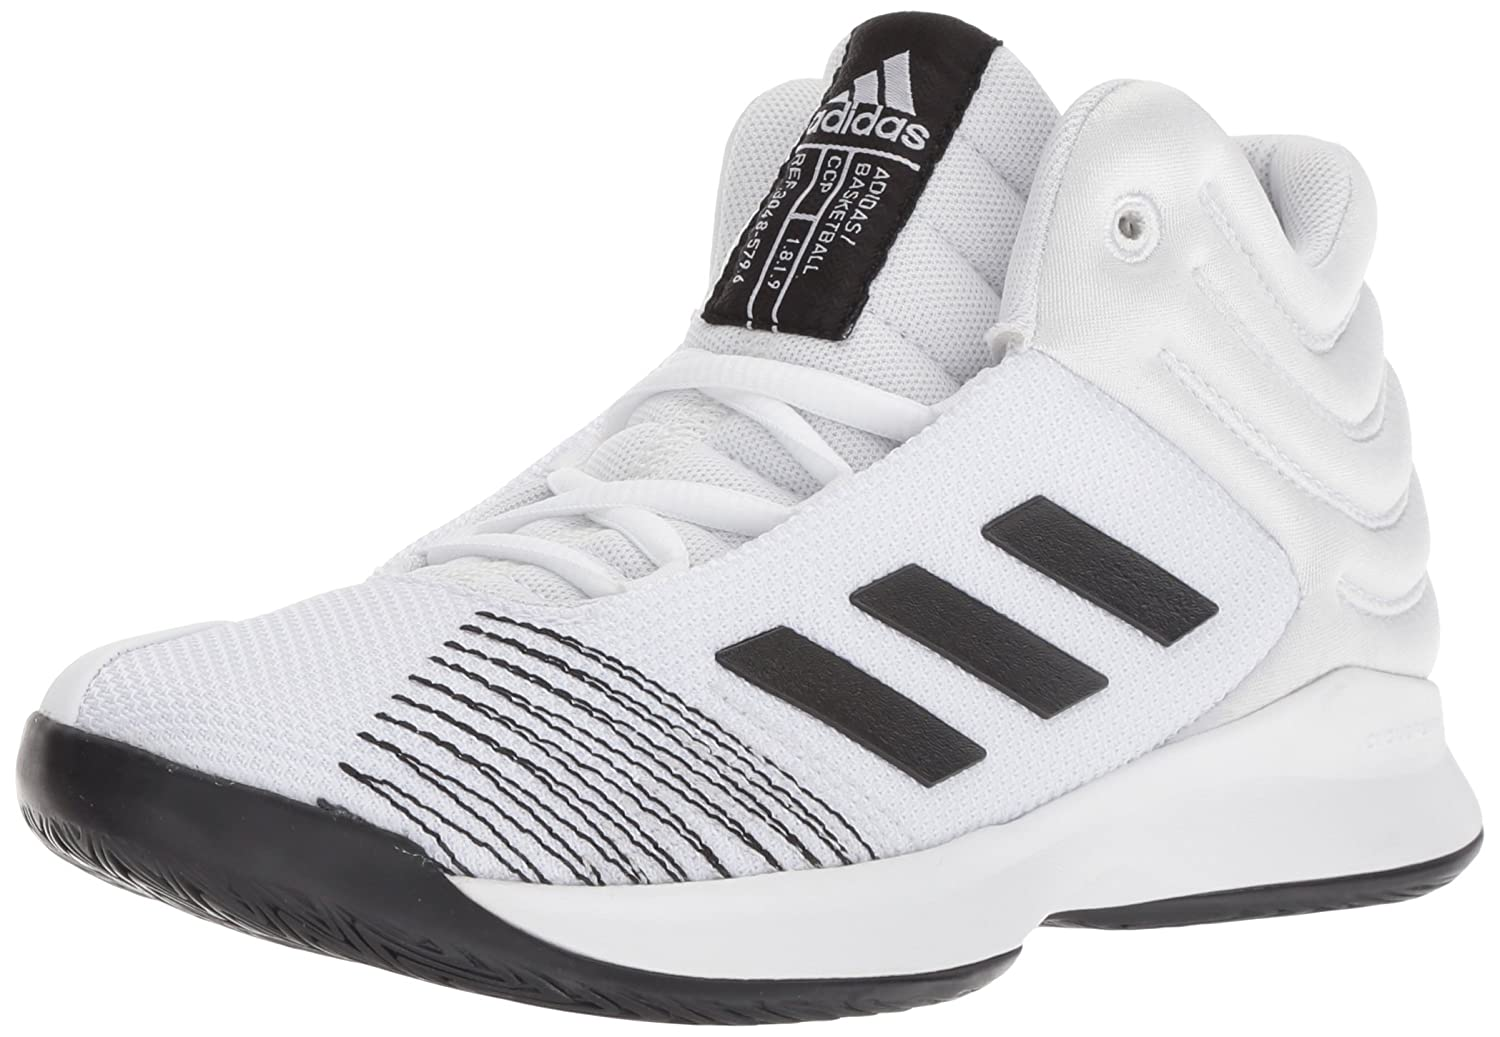 29 Best Adidas Basketball Shoes images | Adidas basketball